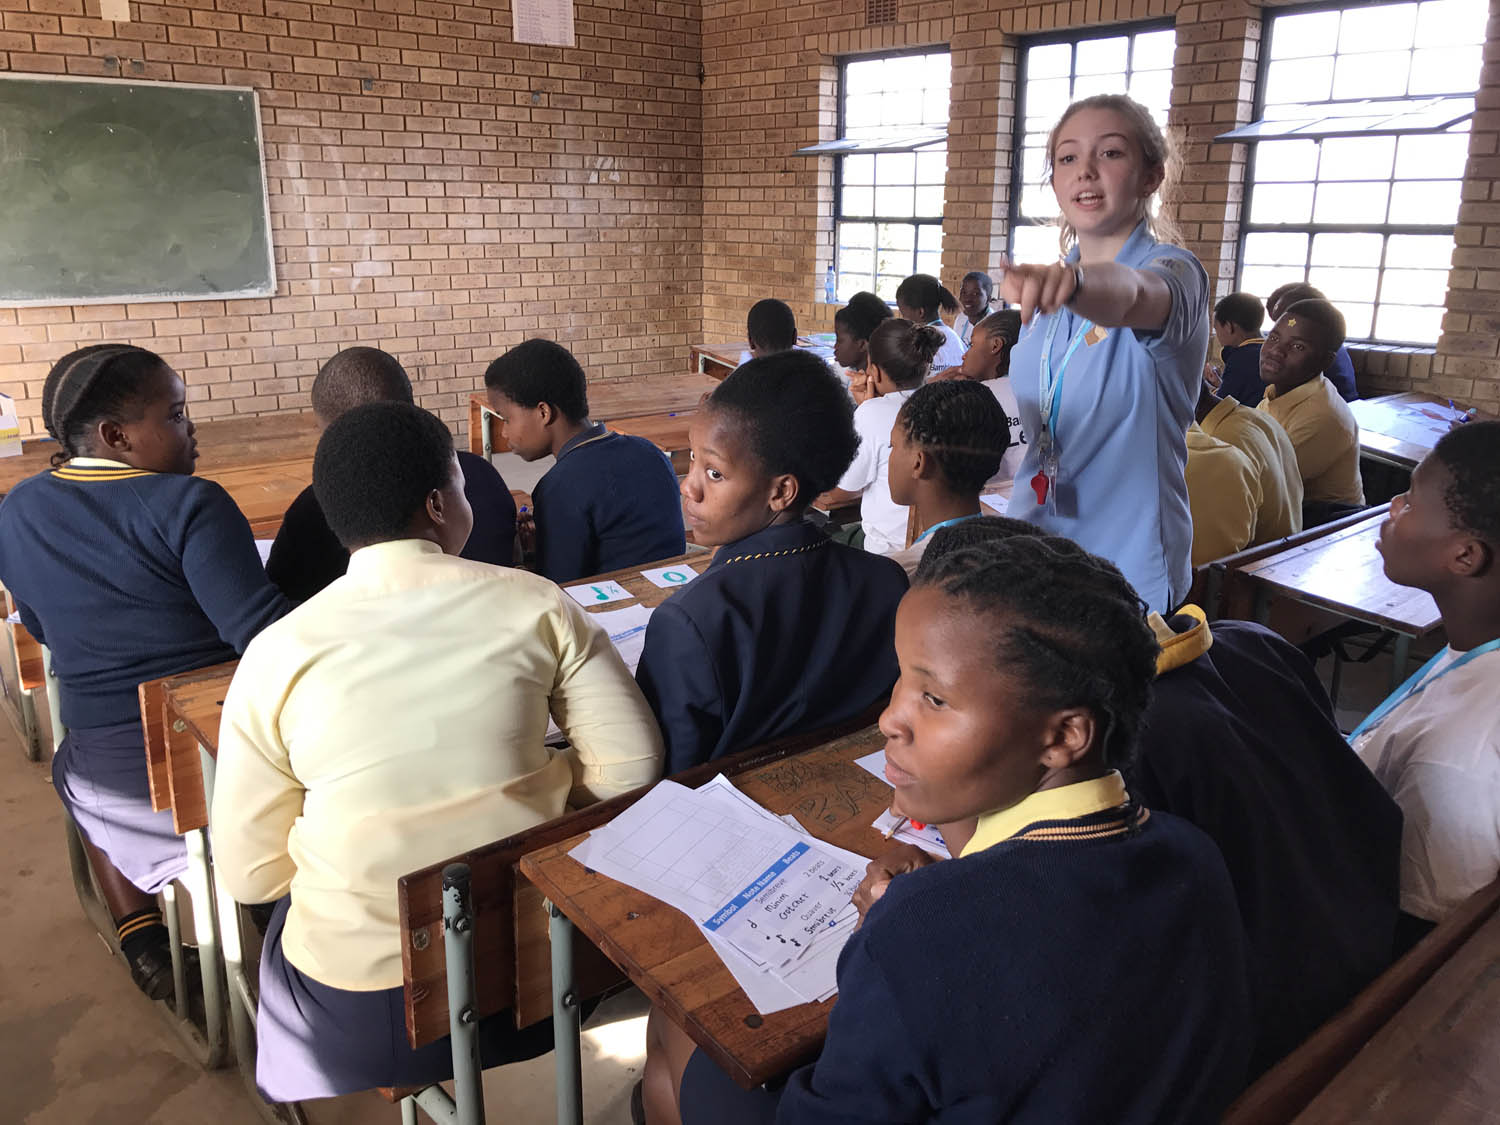 The 2017 Visit to South Africa